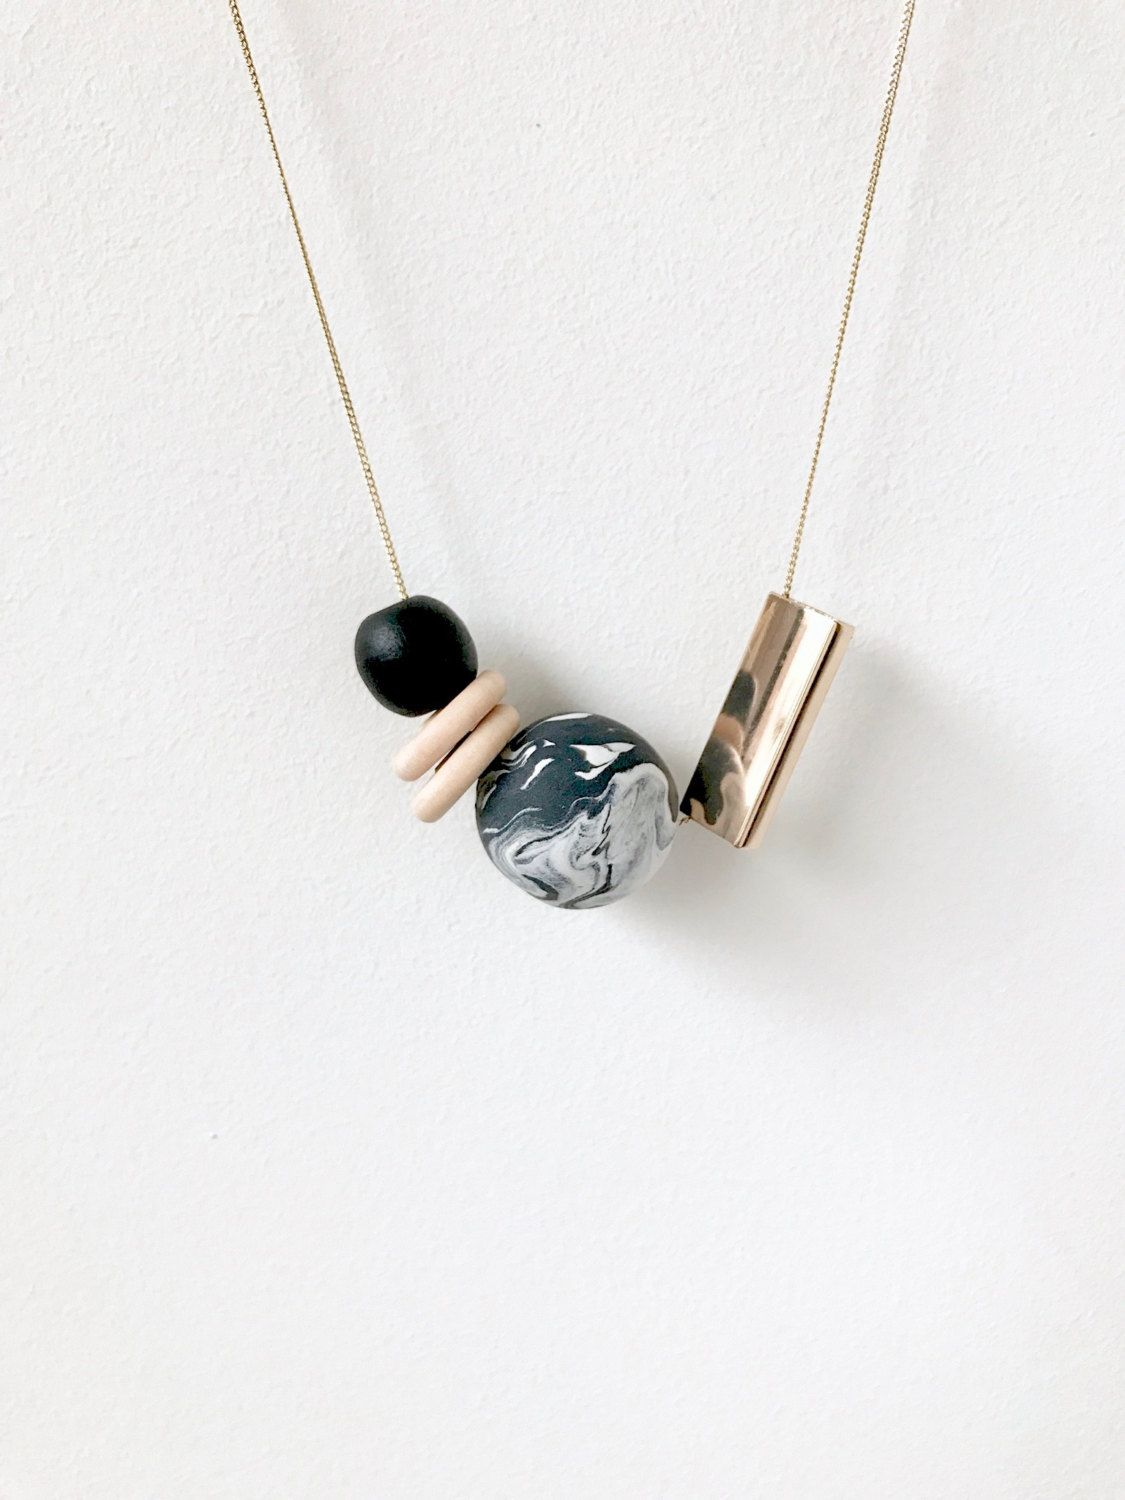 marbled minimalism | statement necklace from marbled black and